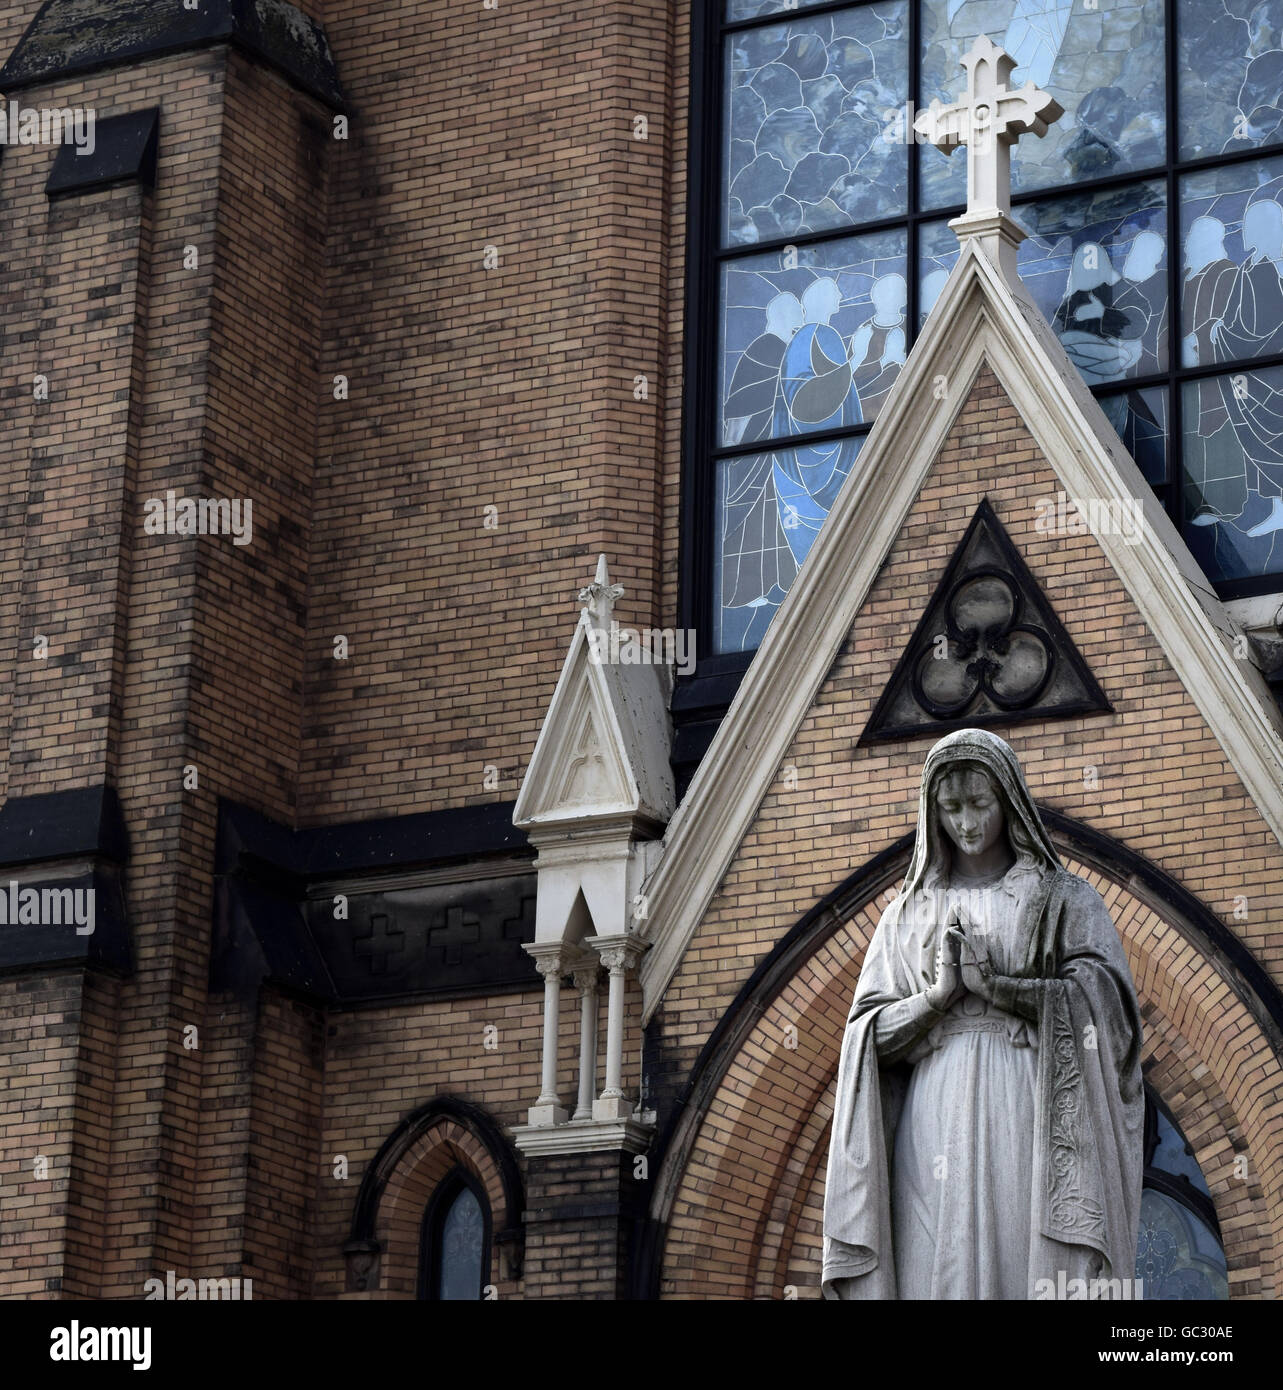 St Mary Of The Mount >> Statue Of Mary With St Mary Of The Mount In The Backdrop Stock